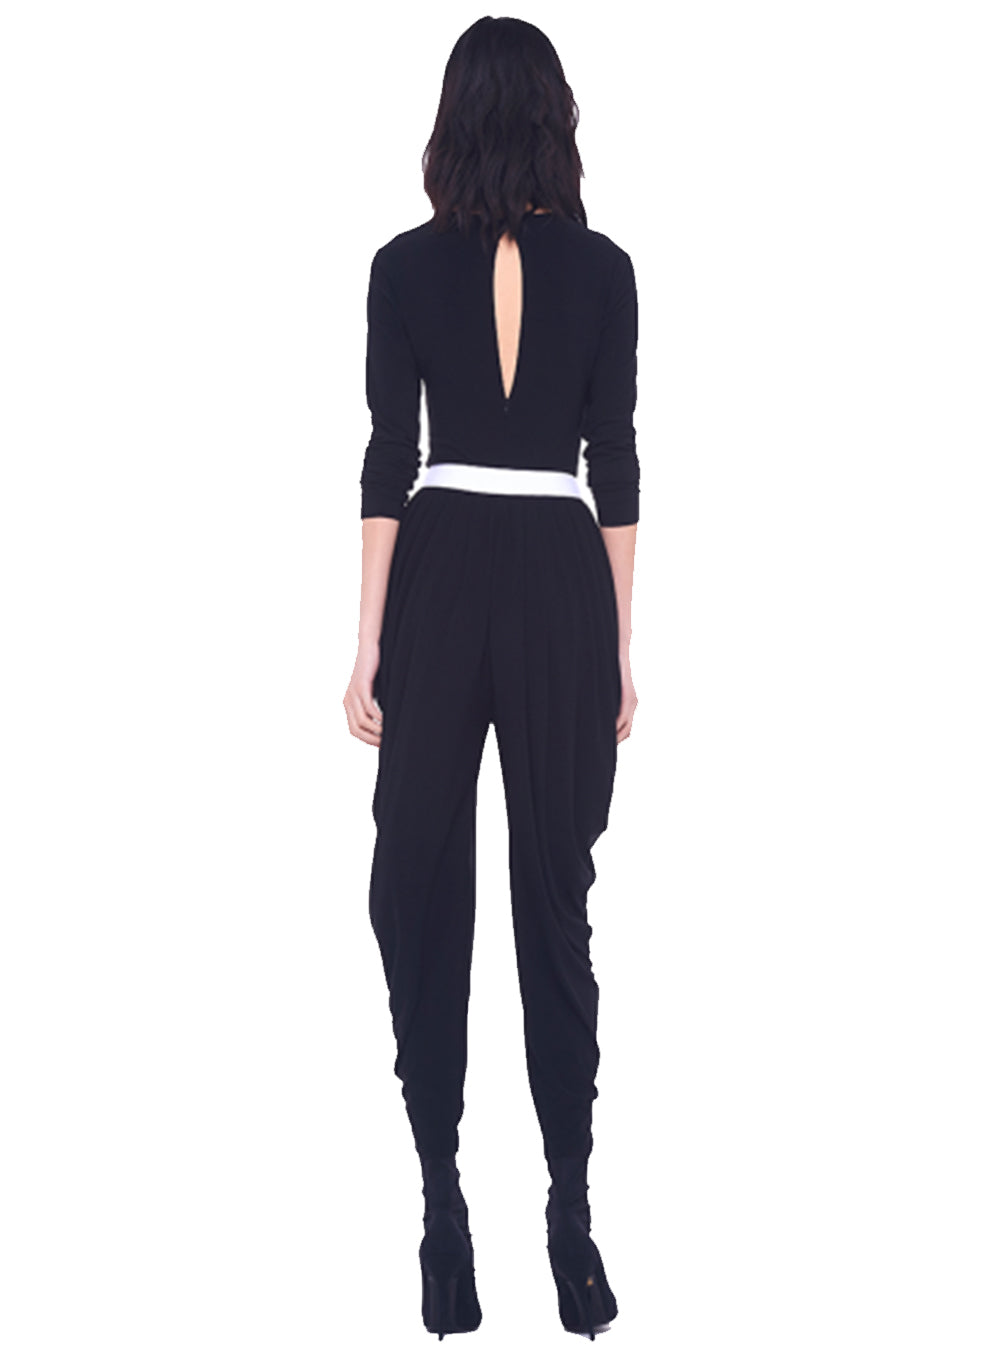 NORMA KAMALI | Long Sleeve Waterfall Jumpsuit in Black